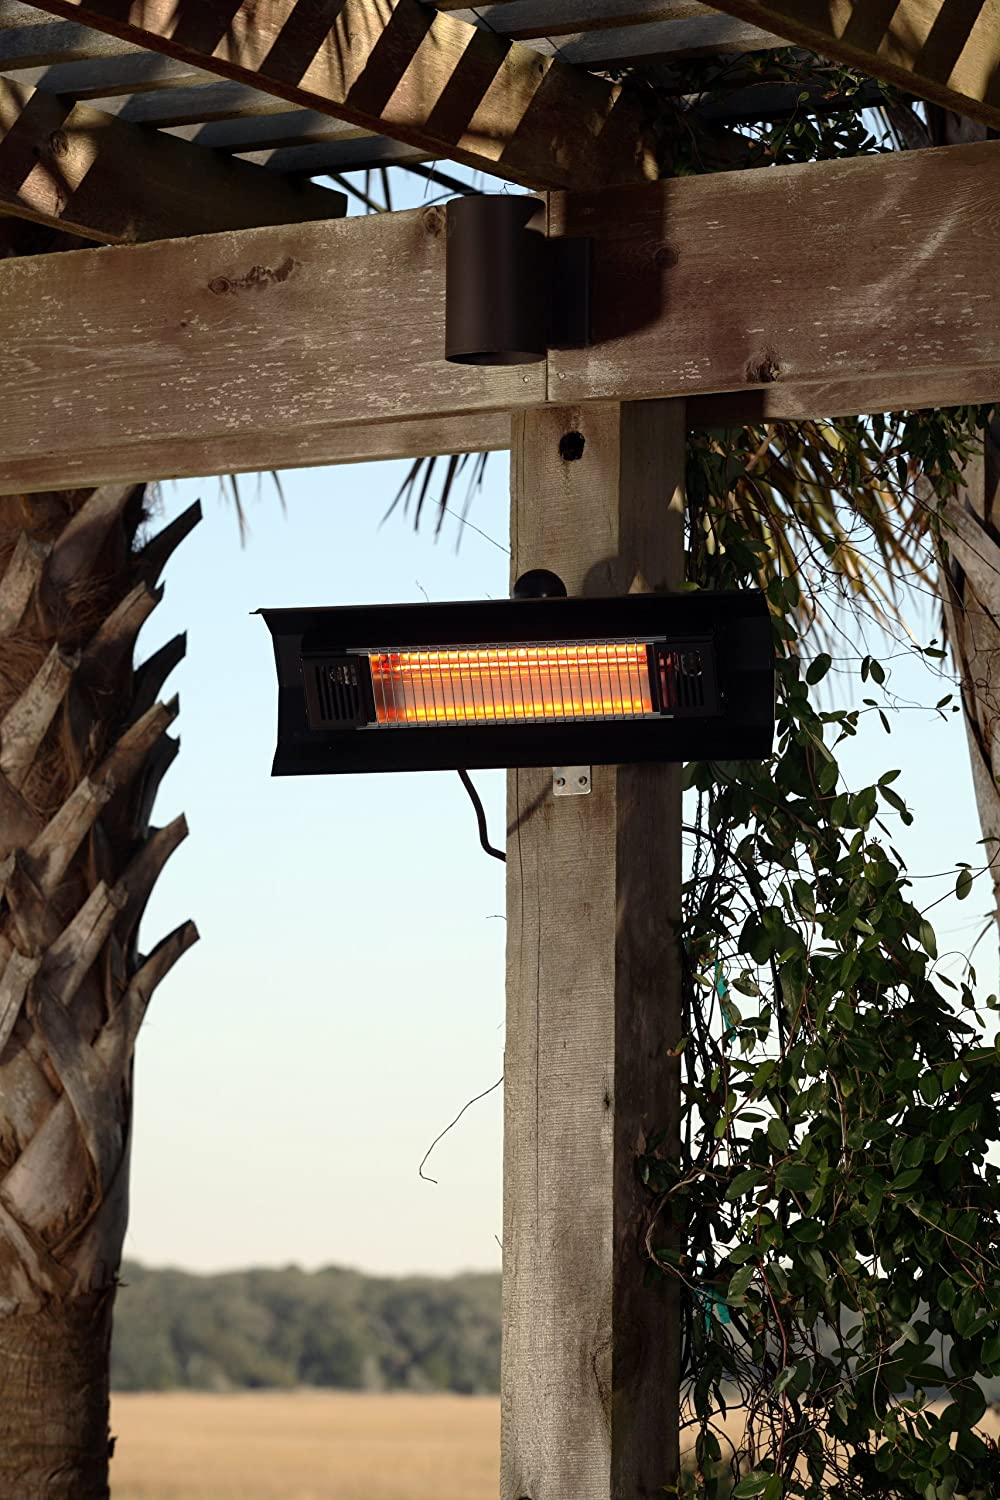 hanging patio heater. Amazon.com : Fire Sense Indoor/Outdoor Wall-Mount Infrared Heater, Black Portable Outdoor Heating Garden \u0026 Hanging Patio Heater E